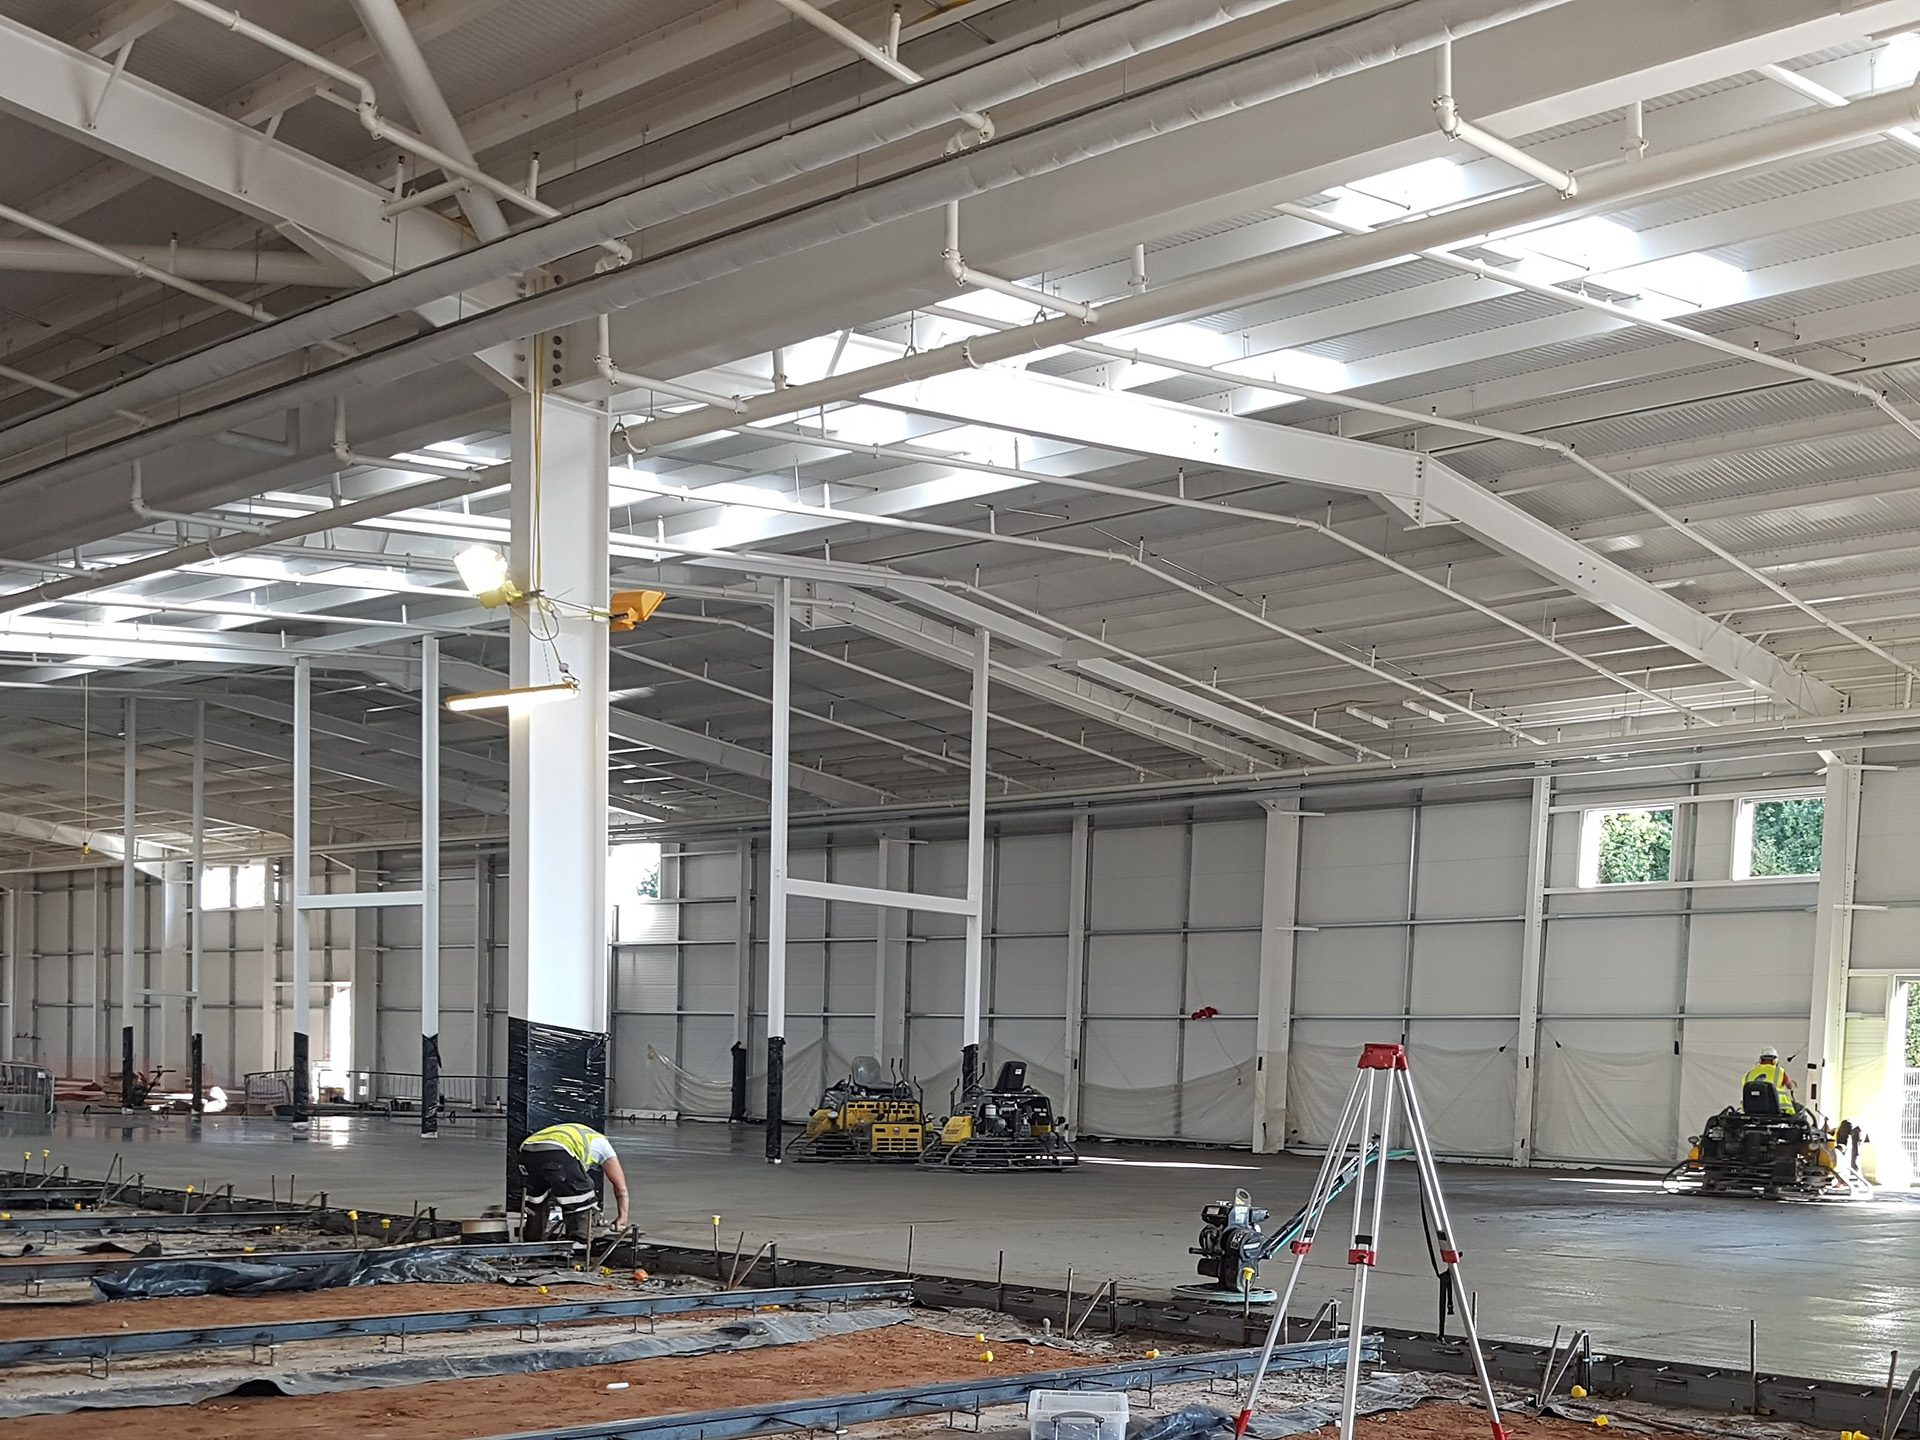 Workers laying a concrete floor